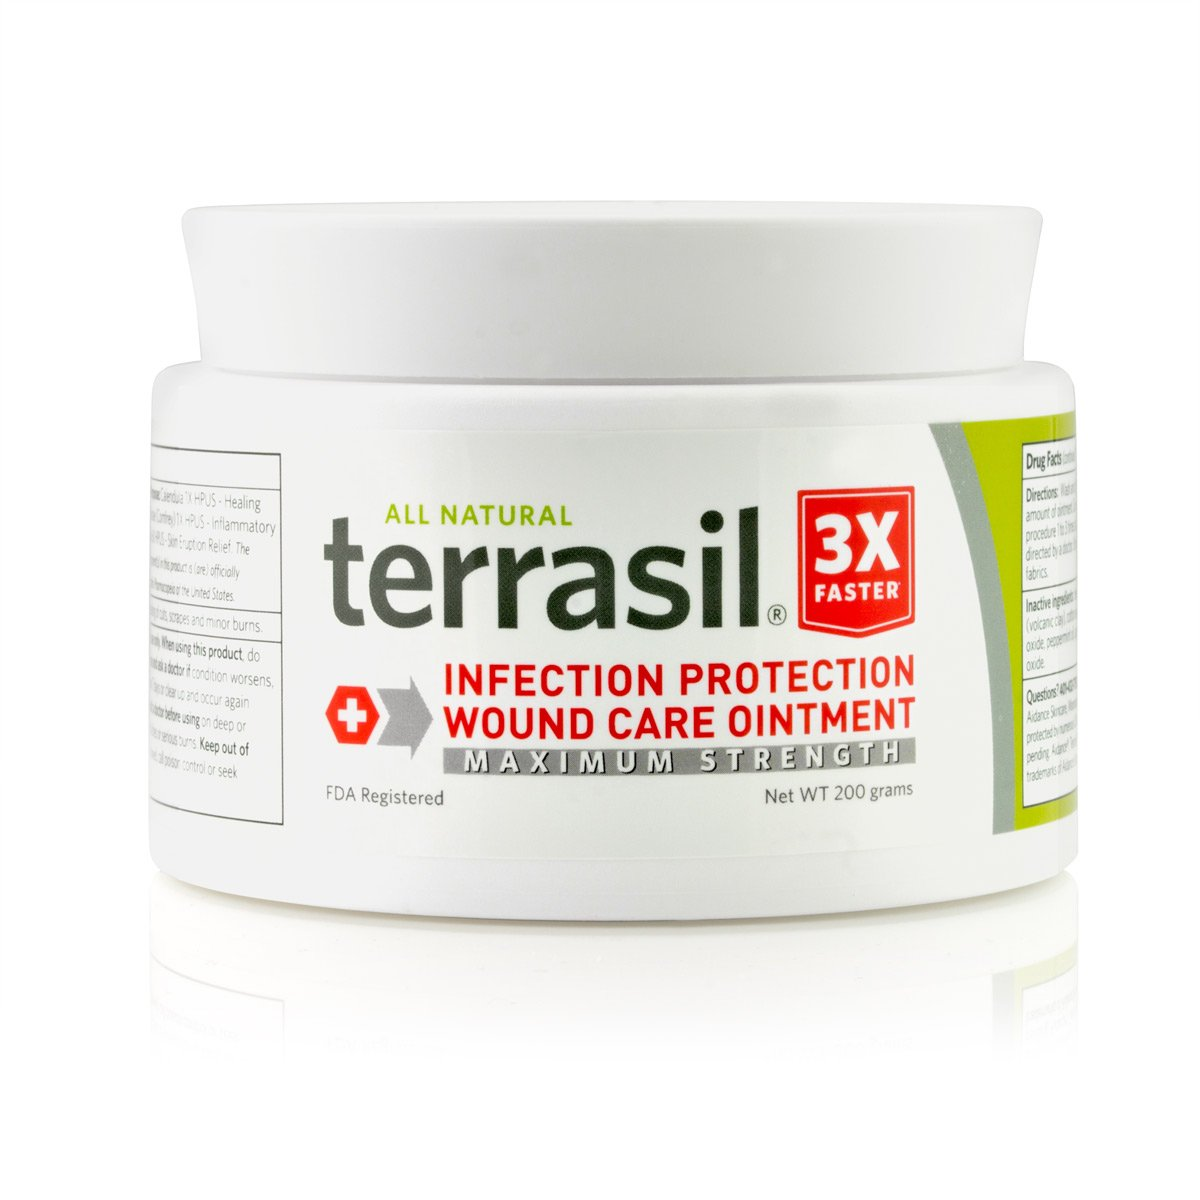 Terrasil® Wound Care - 3X Faster Healing, Dr. Recommended, Infection Protection Ointment for Bed sores, Pressure sores, Diabetic Wounds, ulcers, cuts, scrapes, and Burns - 200g Jar